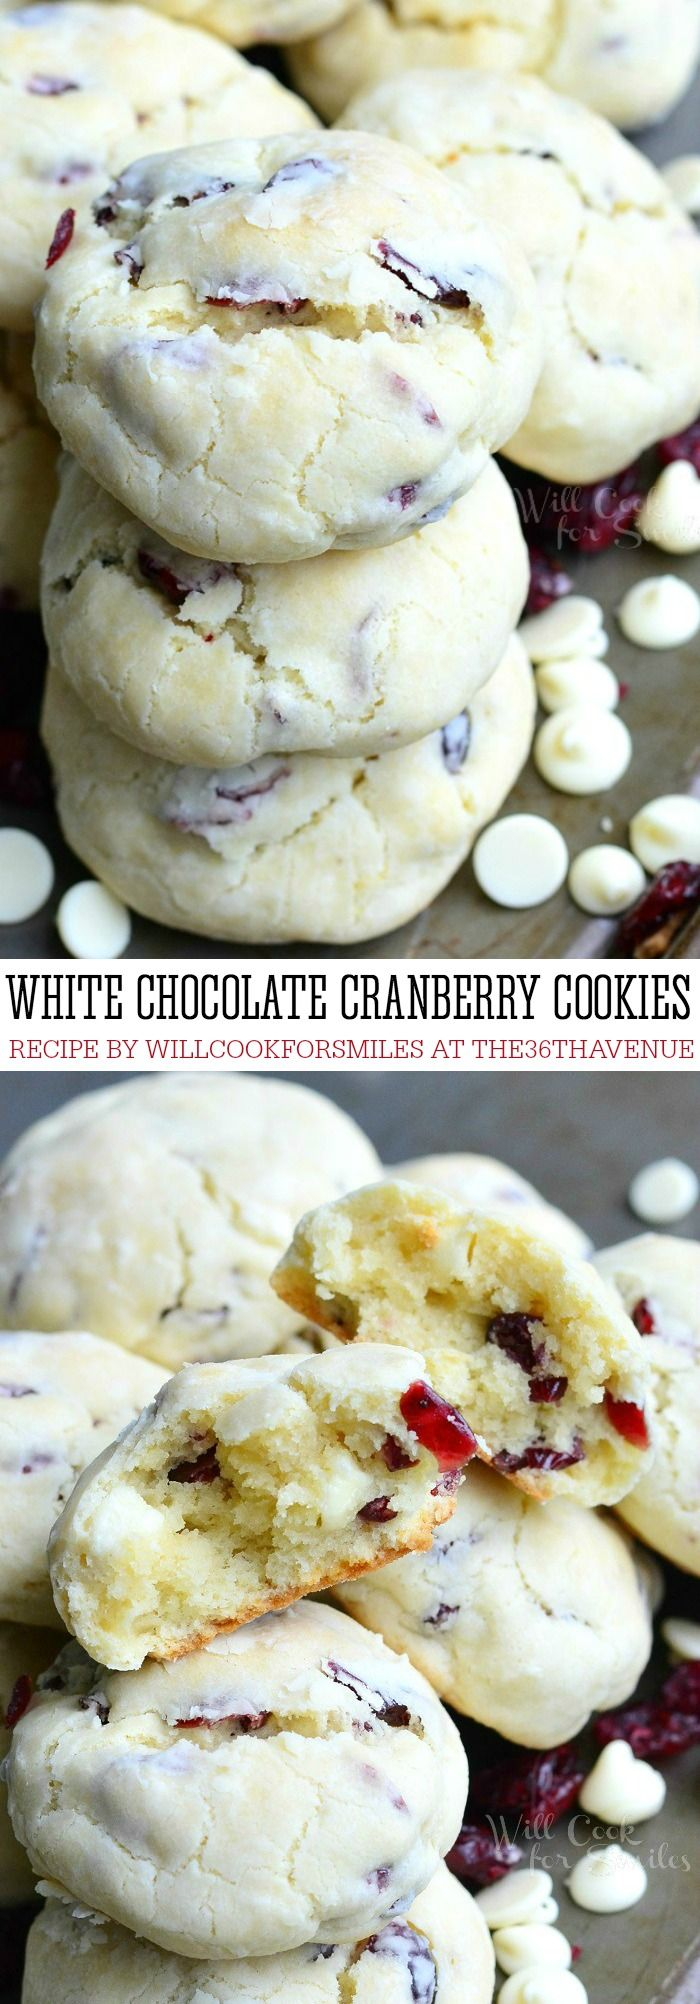 White Chocolate Cranberry Soft Crinkle Cookies FoodBlogs.com